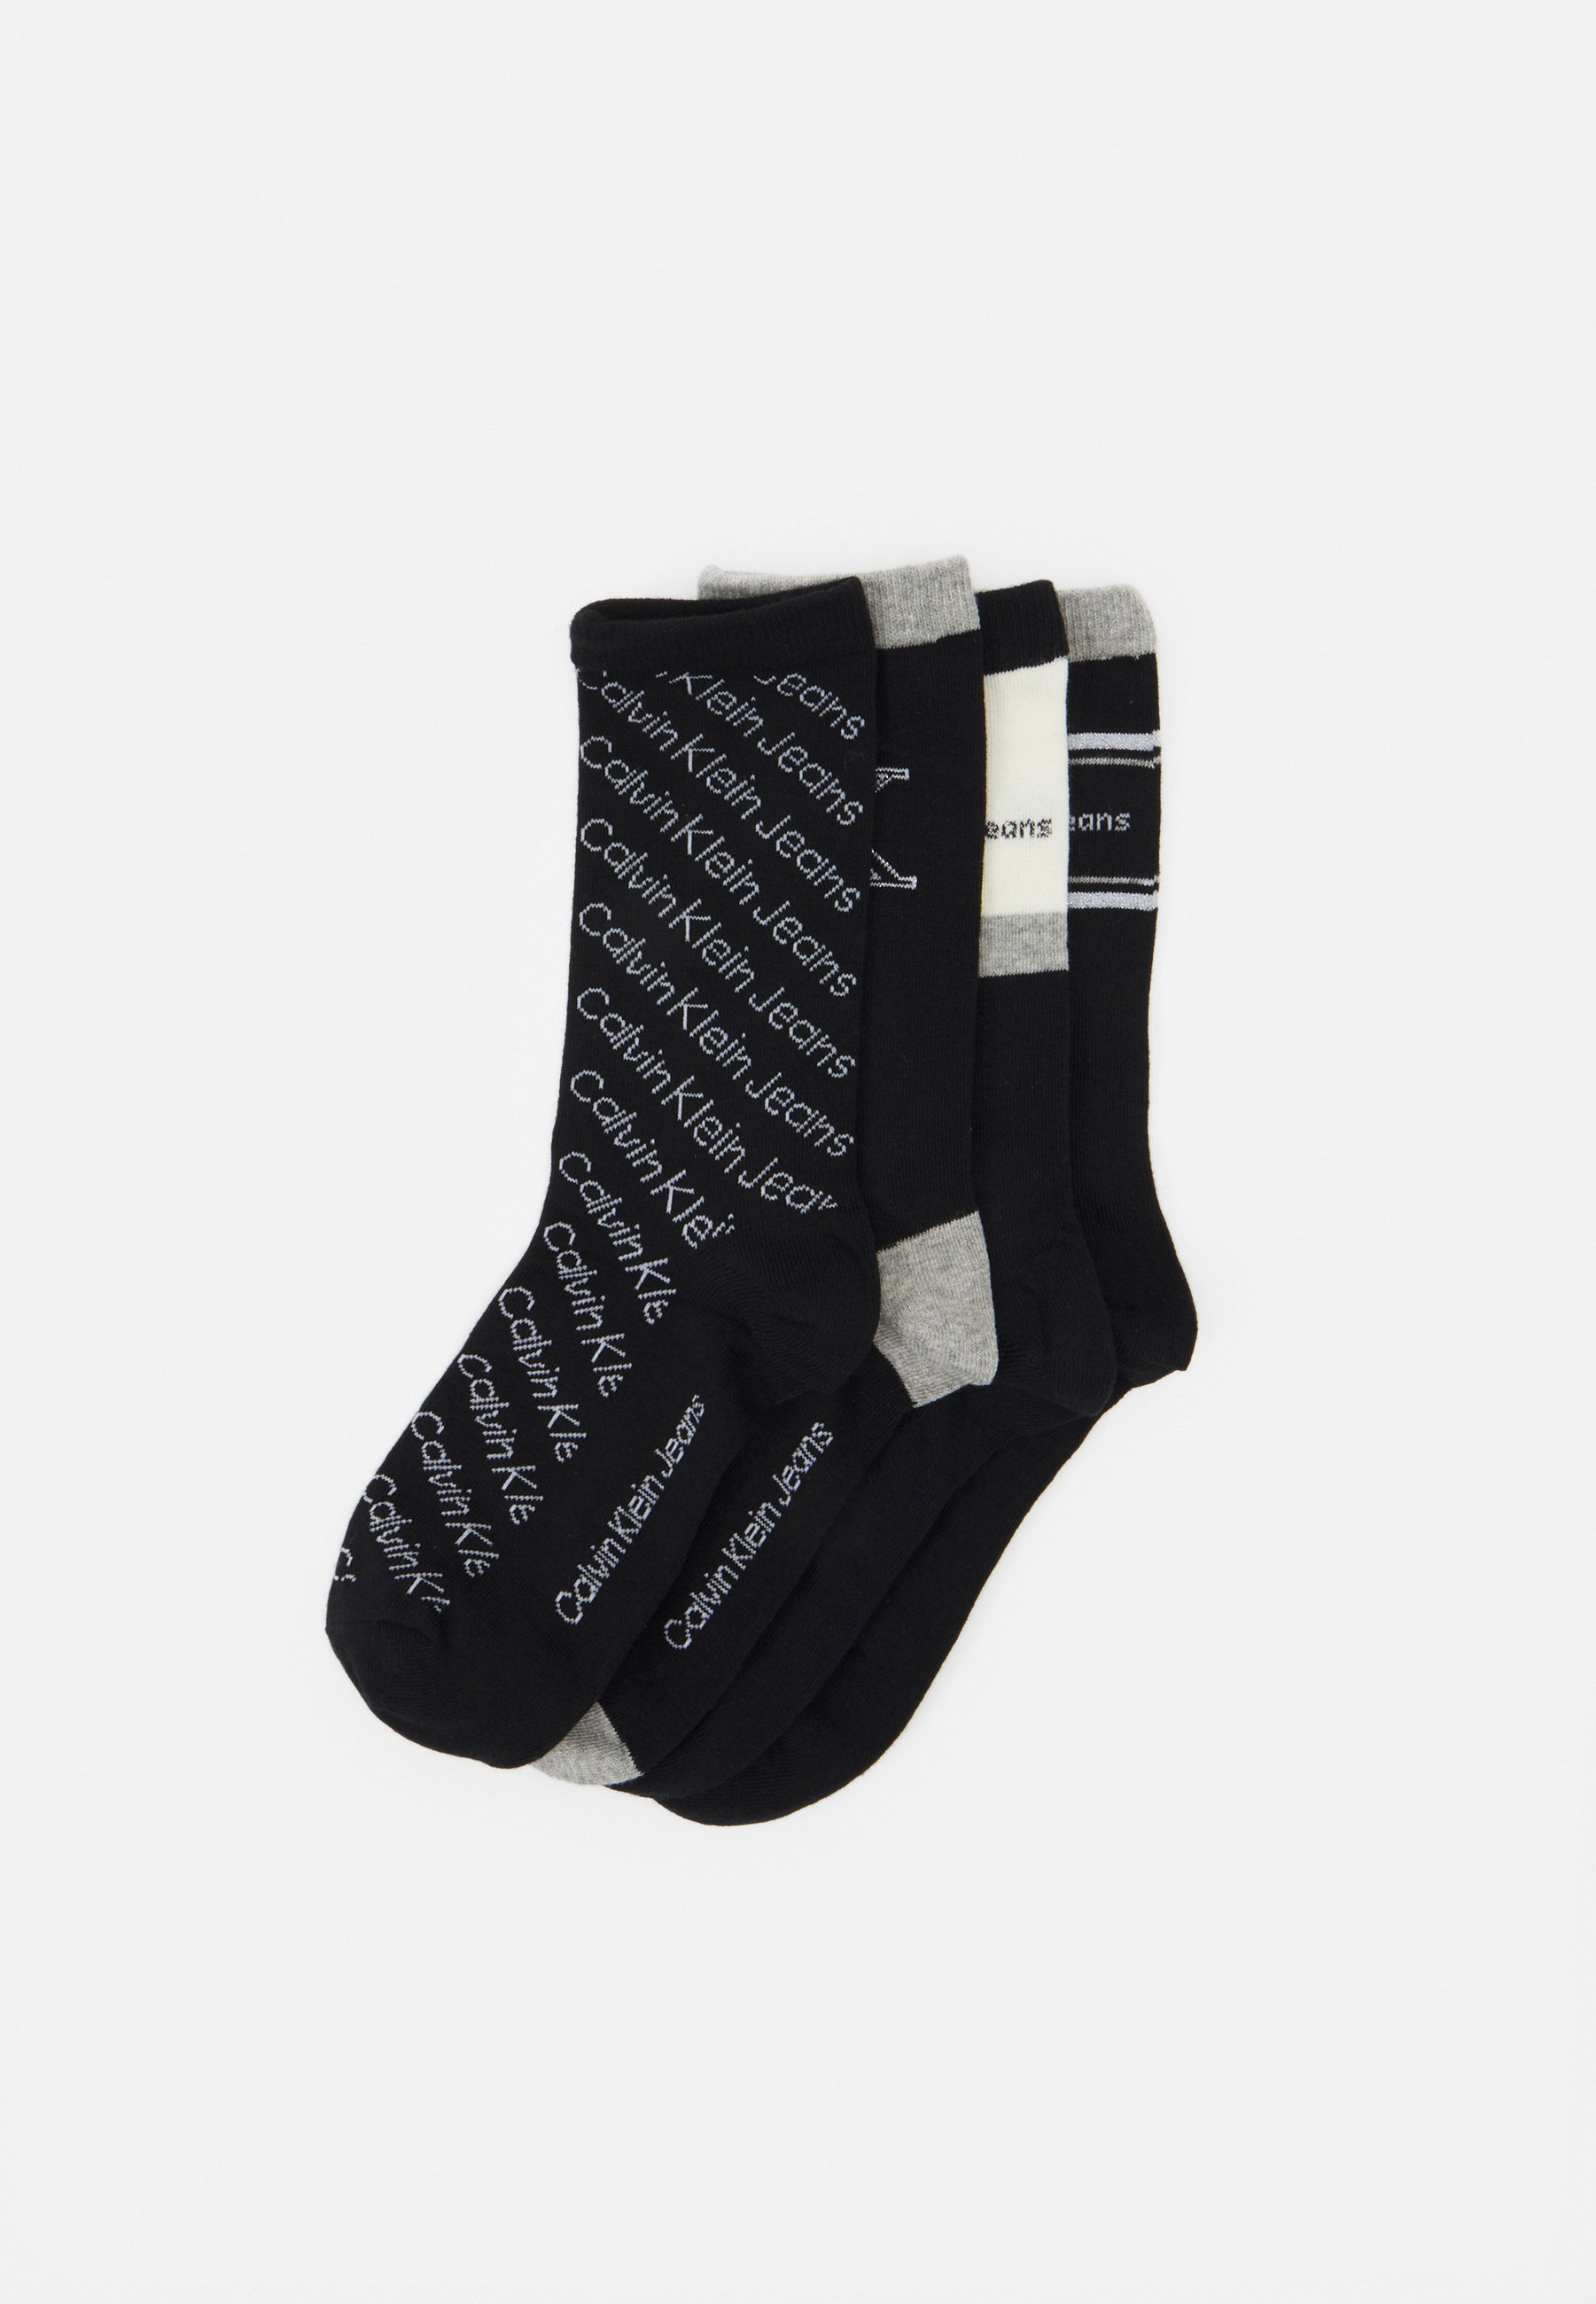 Femme WOMENS LOGO DRESS CREW GIFTBOX EVE 4 PACK - Chaussettes